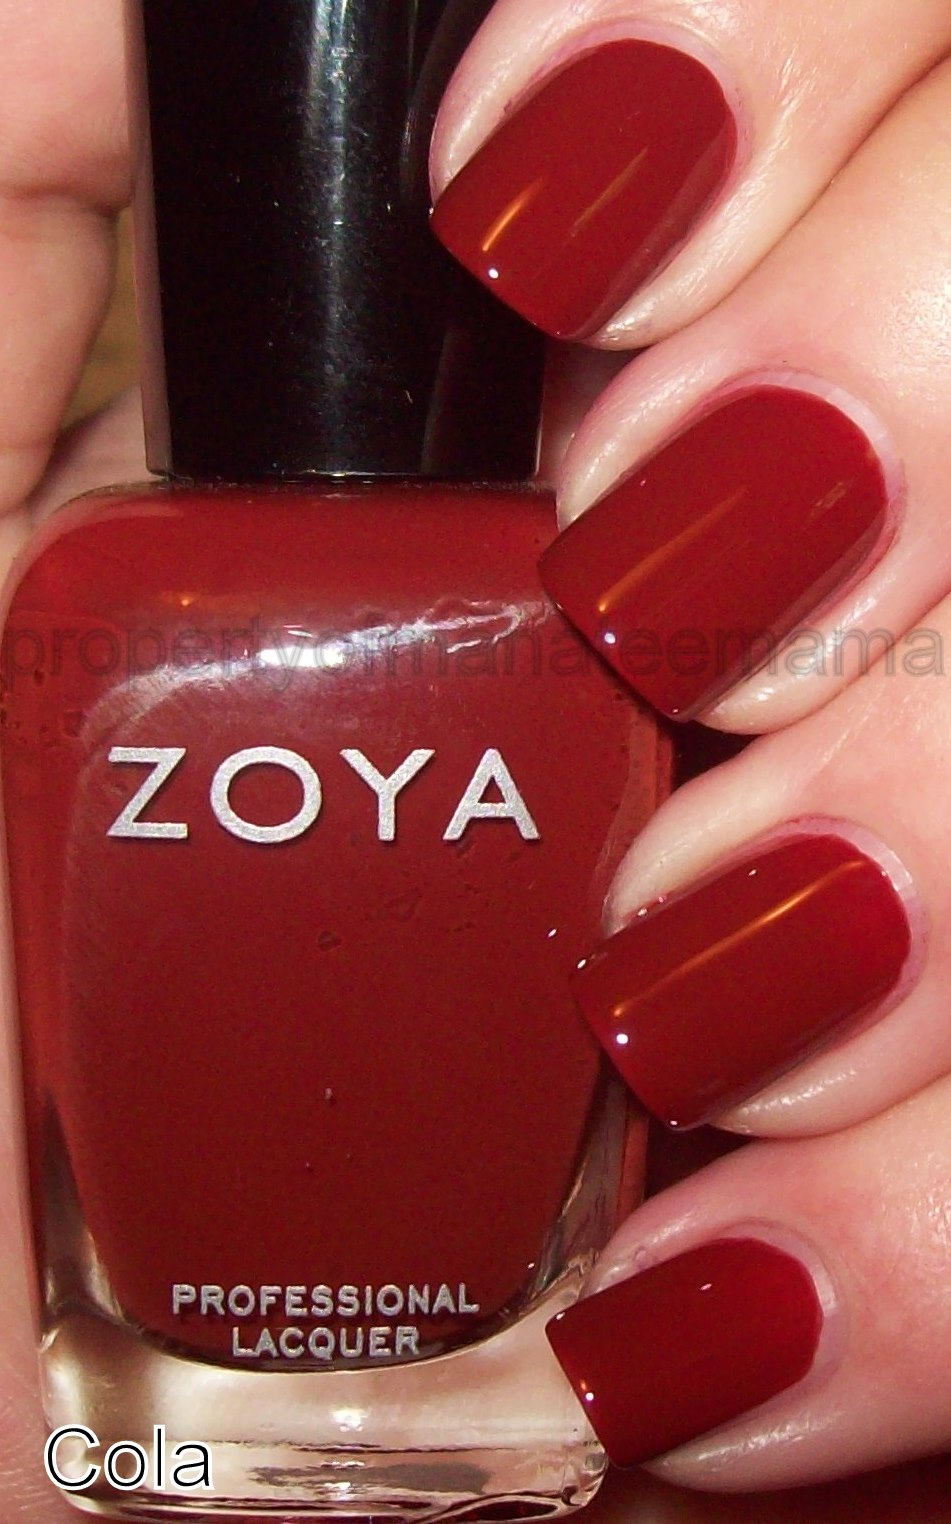 Holy bright RED batman  I am  so glad  Zoya made this color  They were    Zoya Flowie